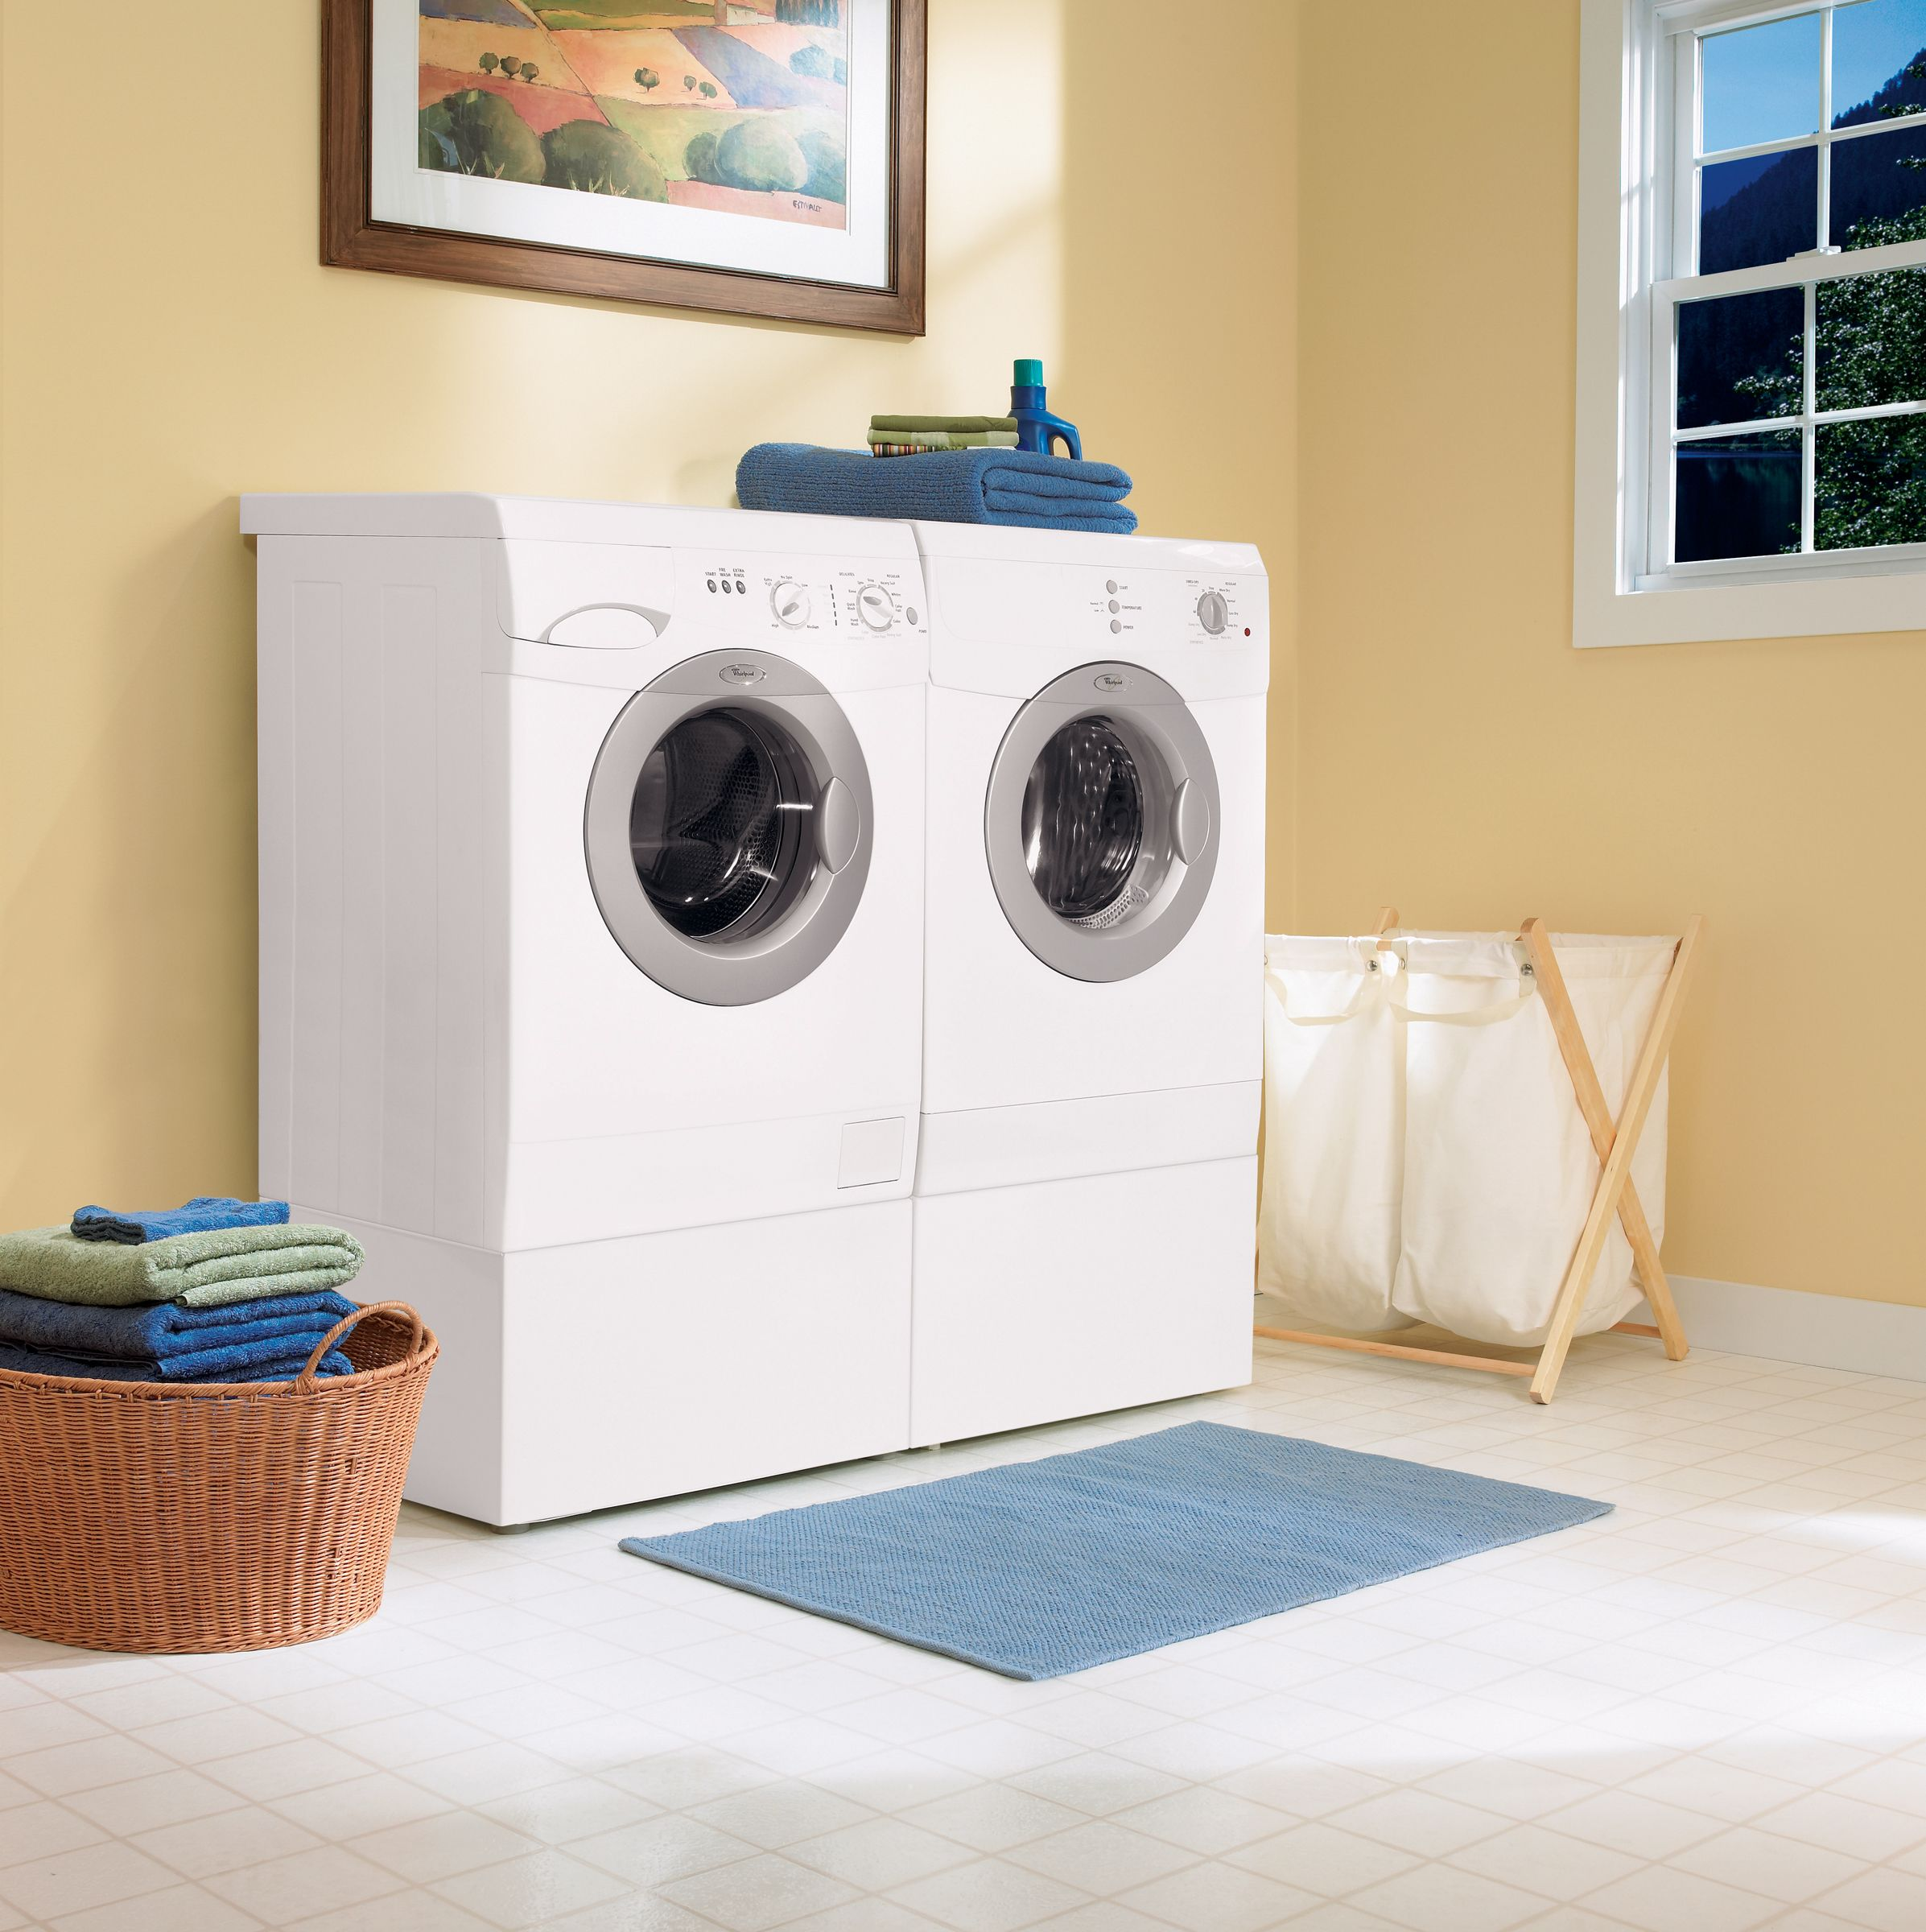 Whirlpool 2.9 cu. ft. Capacity High Efficiency Front Load Washer